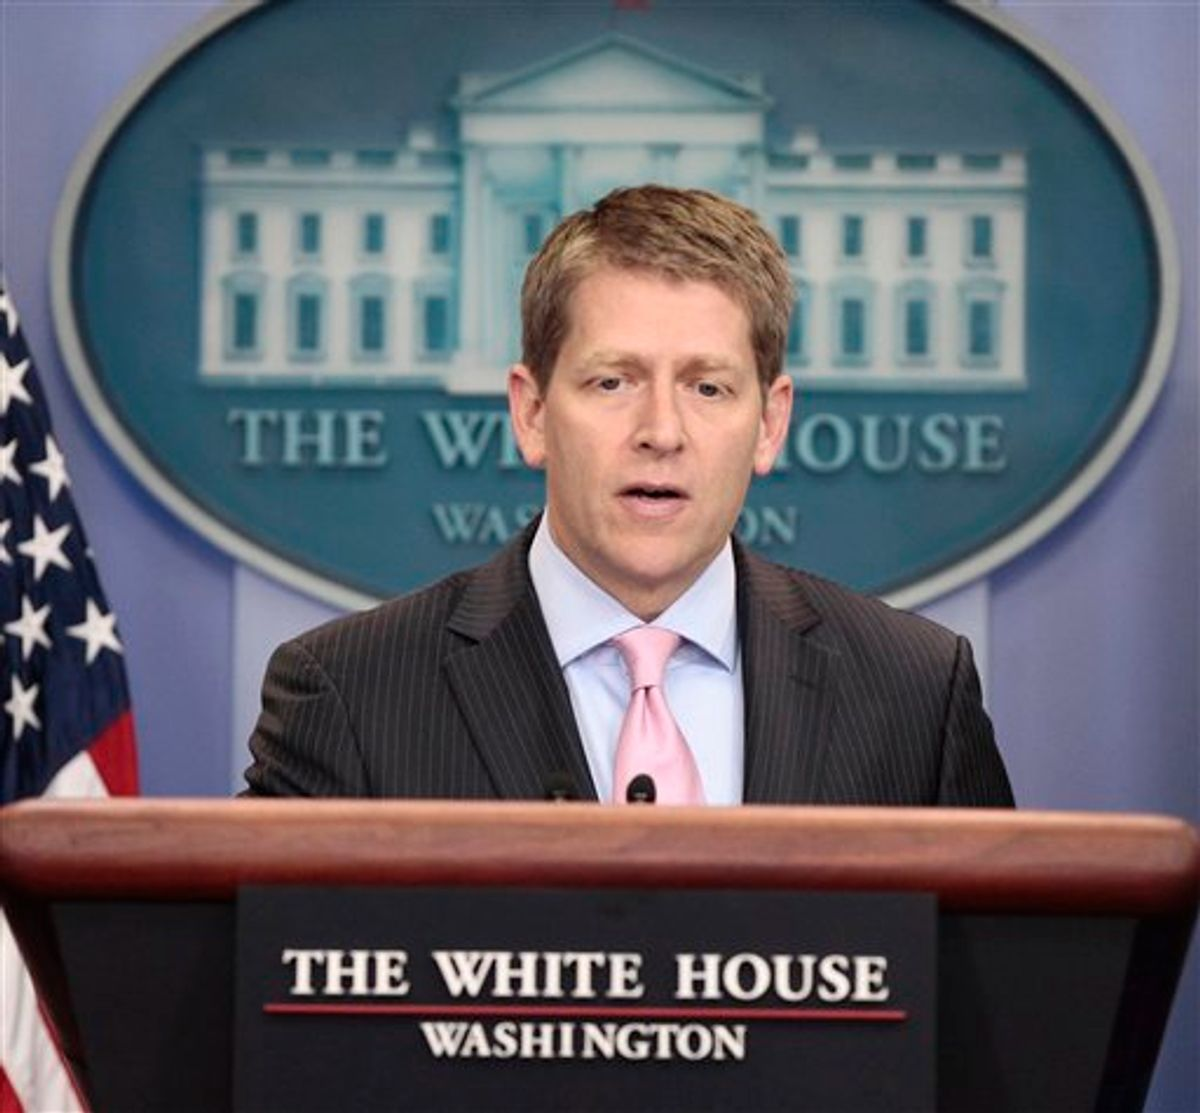 White House Press Secretary Jay Carney speaks during his daily news briefing at the White House in Washington, Monday, July, 18, 2011. (AP Photo/Pablo Martinez Monsivais)   (AP)